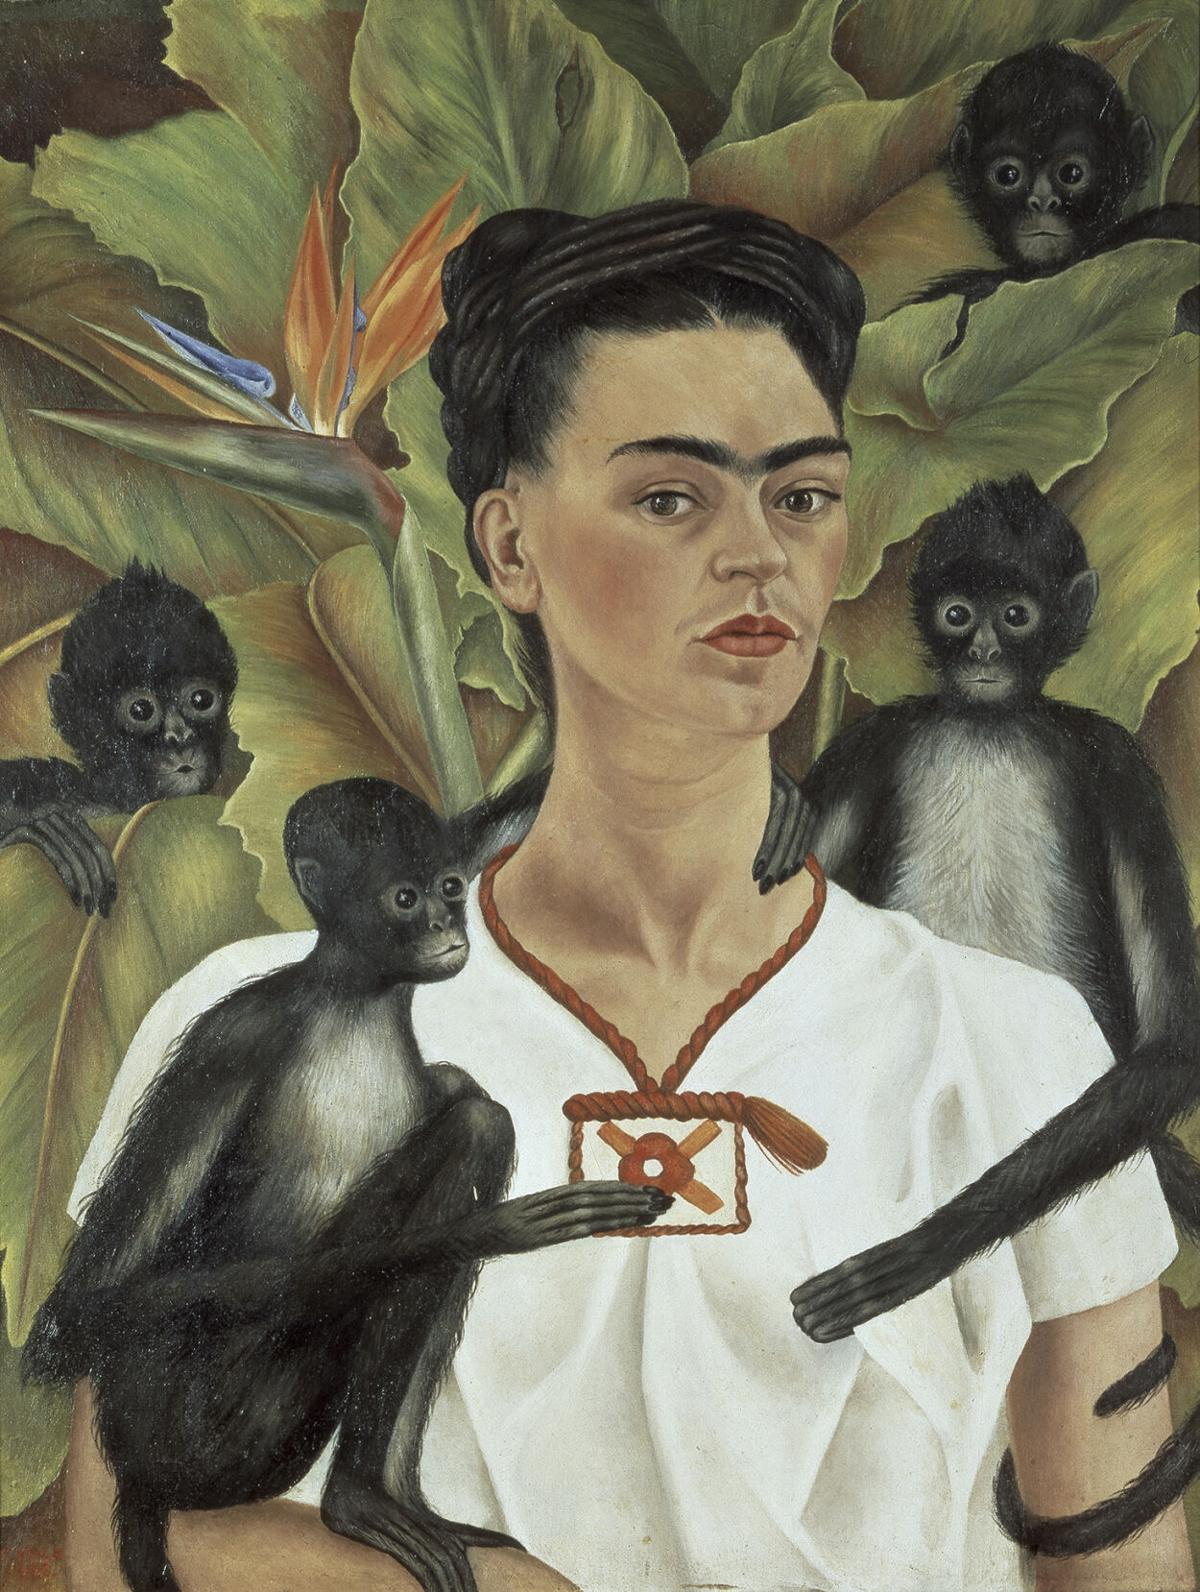 The art of revolution: Frida Kahlo, Diego Rivera, and Mexican Modernism